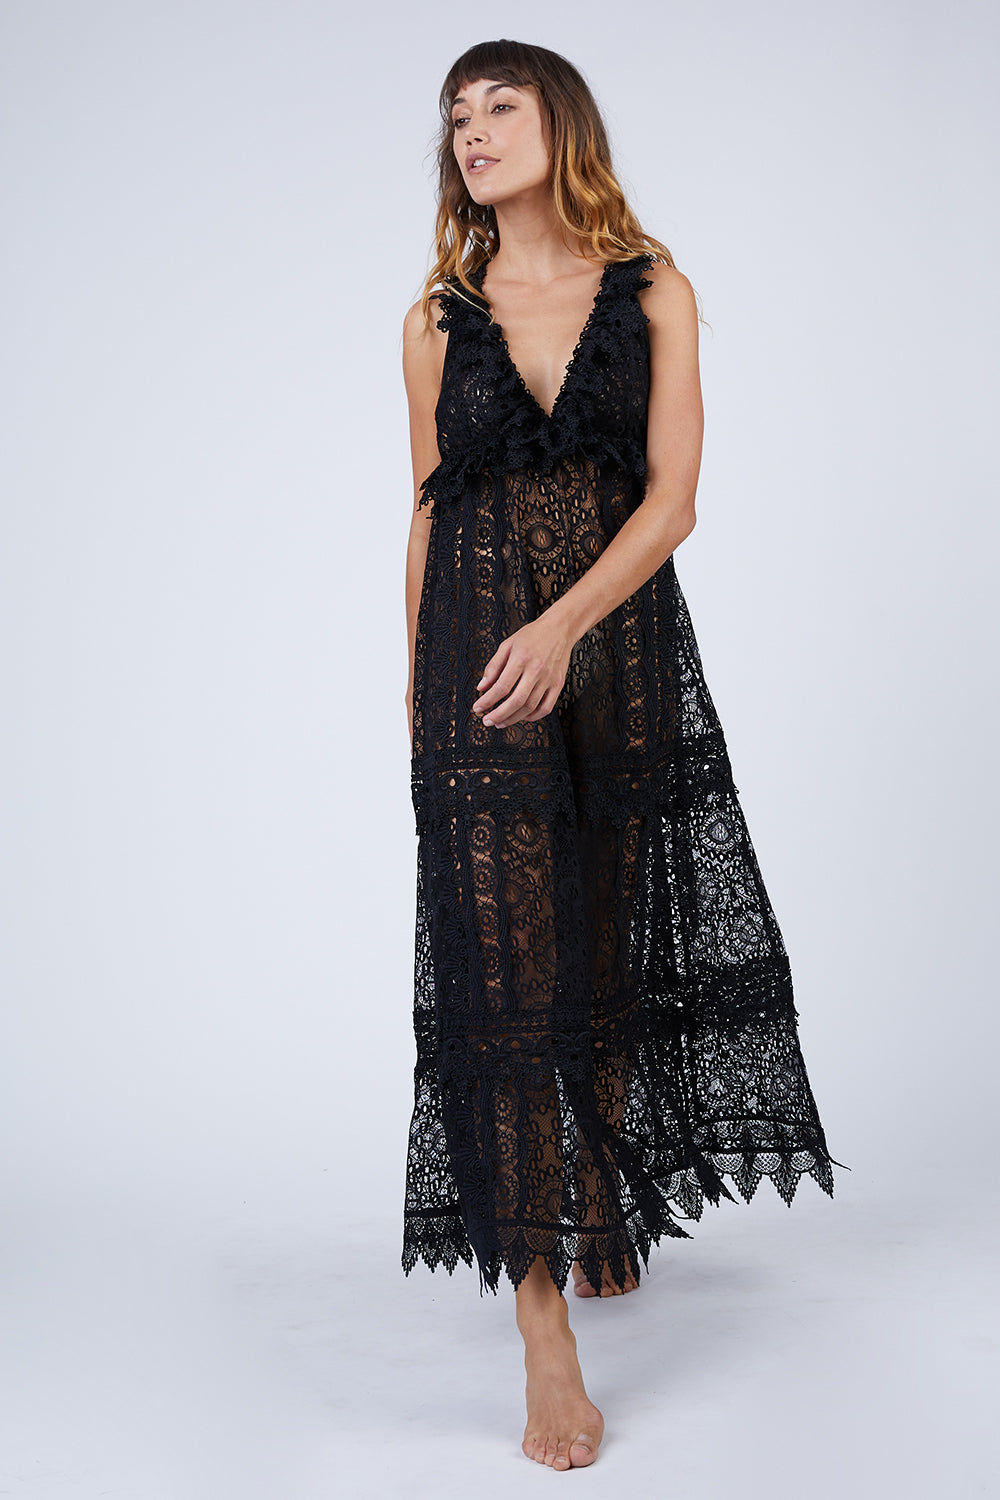 Chic Escape Sheer Lace Maxi Dress Black